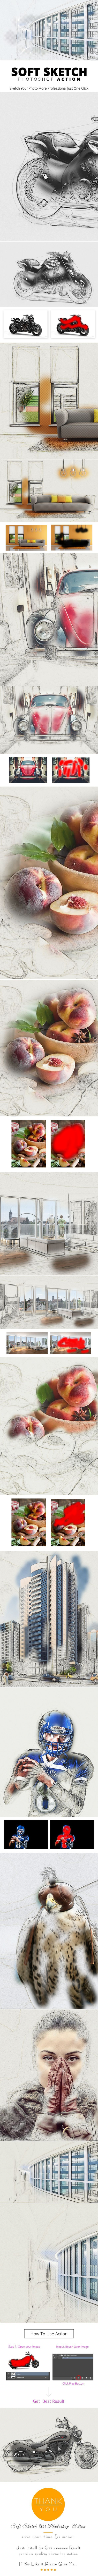 Soft Sketch Art Action — Photoshop ATN #action #pencil • Available here ➝ https://graphicriver.net/item/soft-sketch-art-action/20714185?ref=pxcr